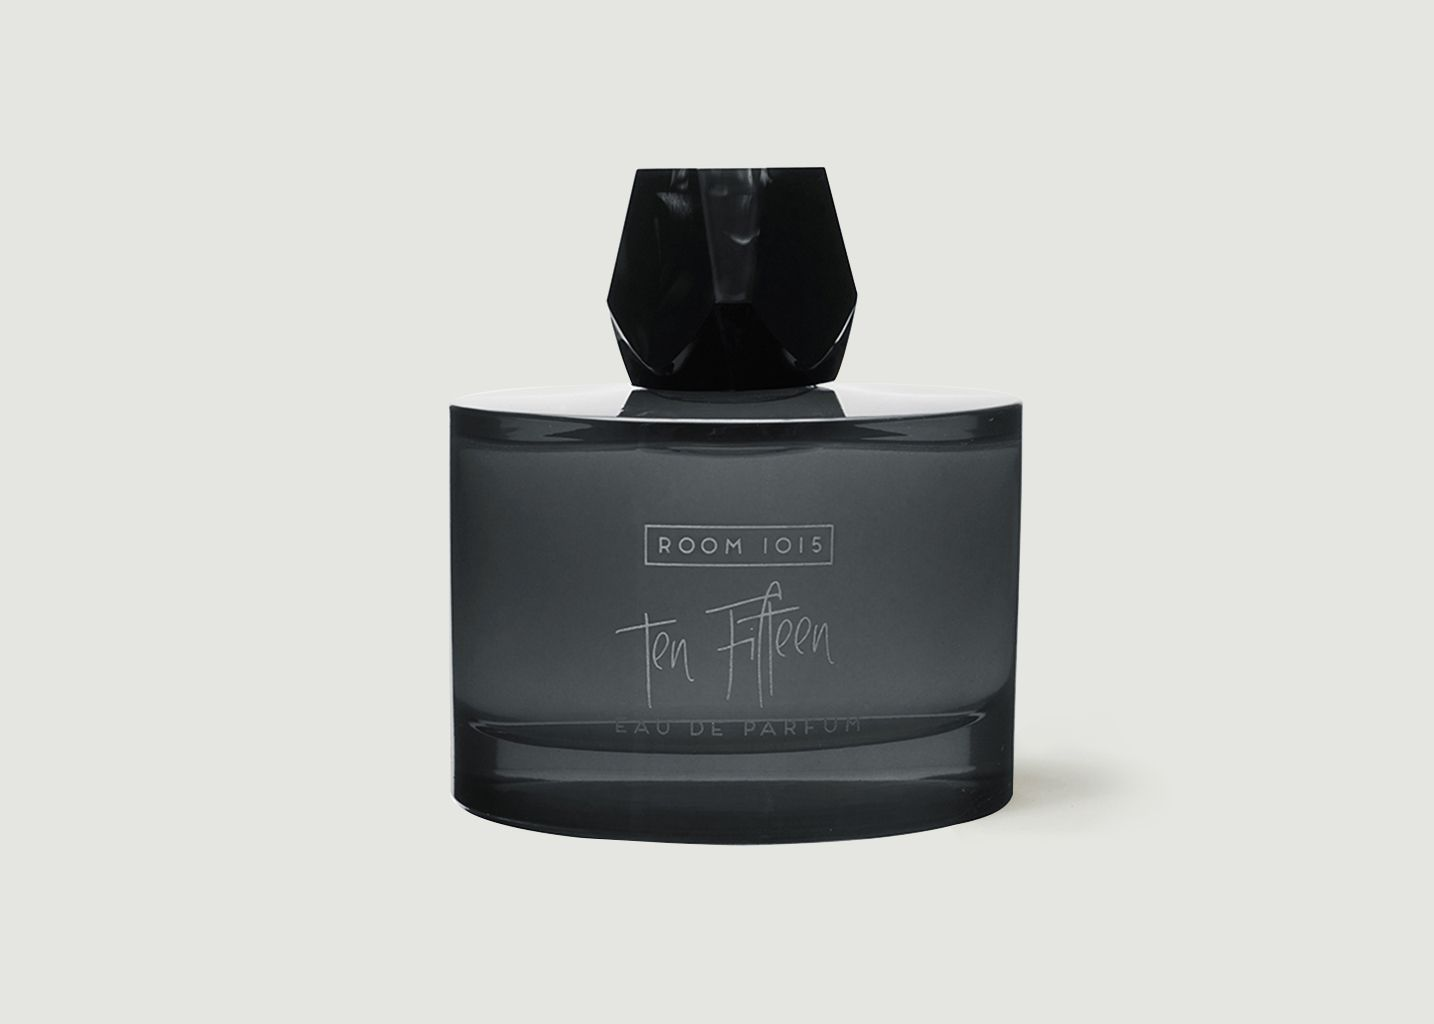 Parfum Ten Fifteen 100ml - Room 1015